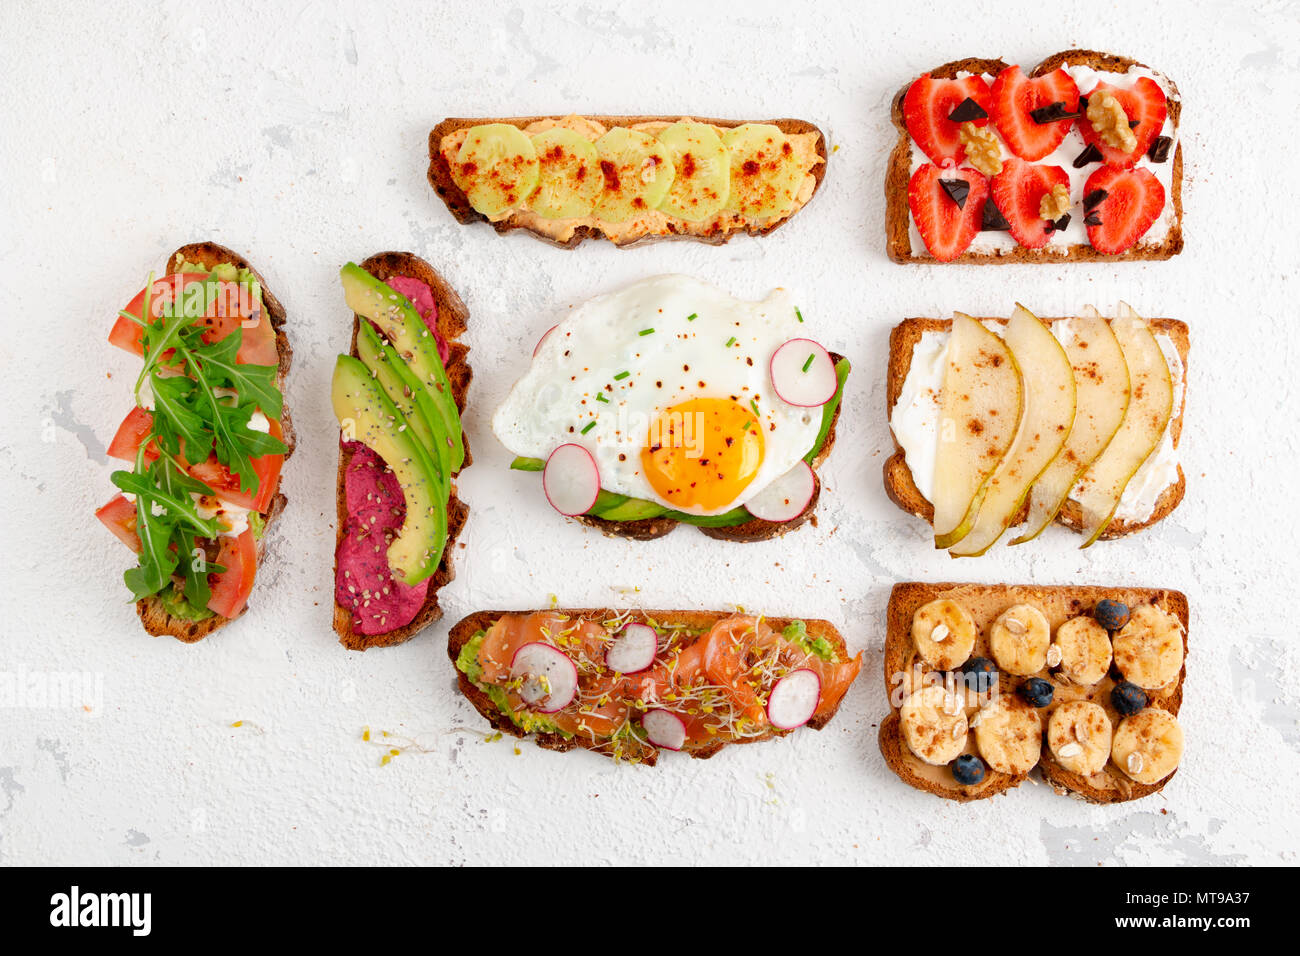 Assortment of healthy breakfast toasts on a white rustic background. Top view, flat lay - Stock Image